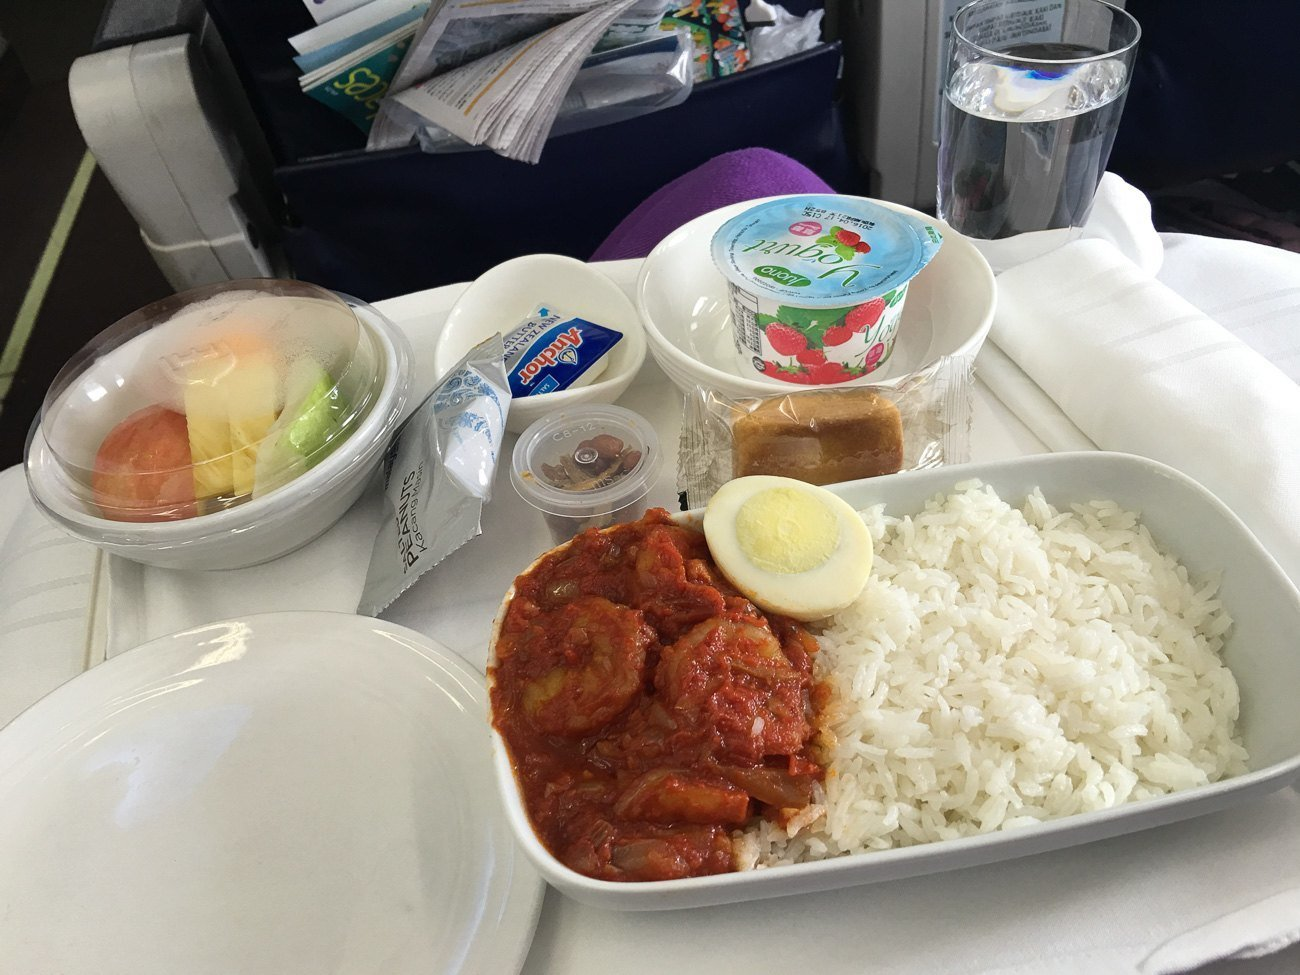 Seafood rice (delicious) for breakfast on Malaysia Airlines in business class from Taipei to Kota Kinabalu